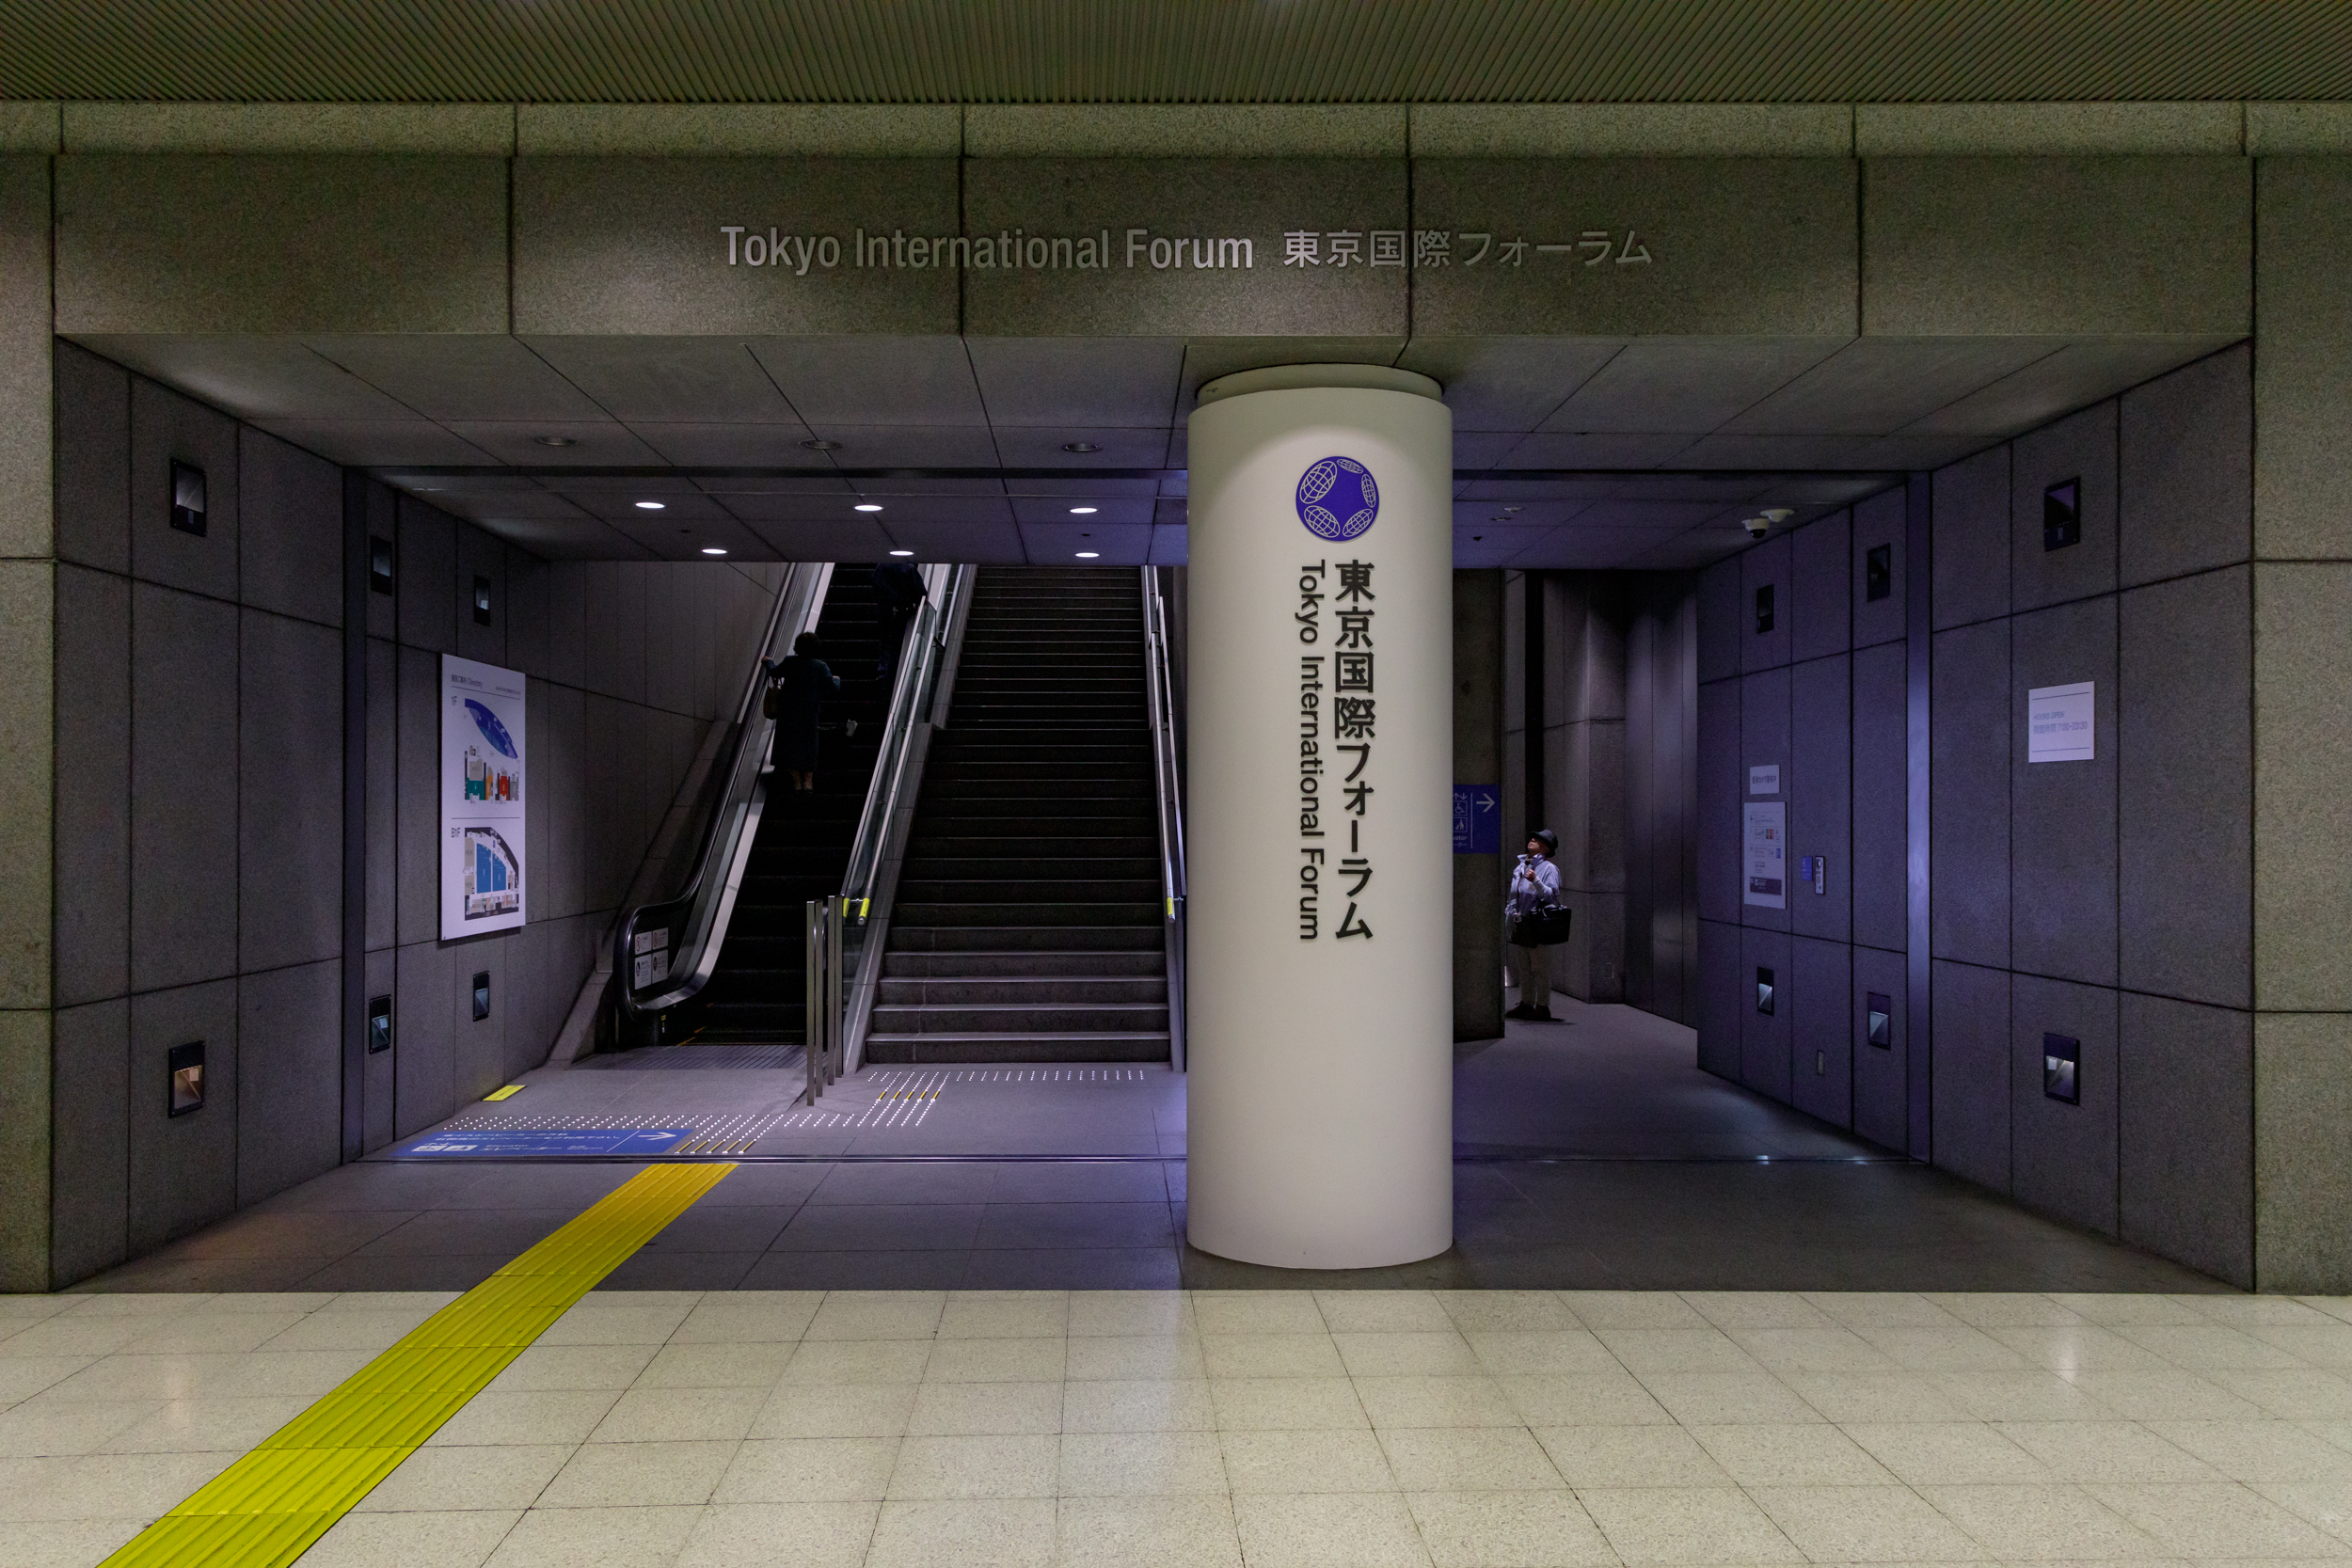 Entrance to the Tokyo International Forum .